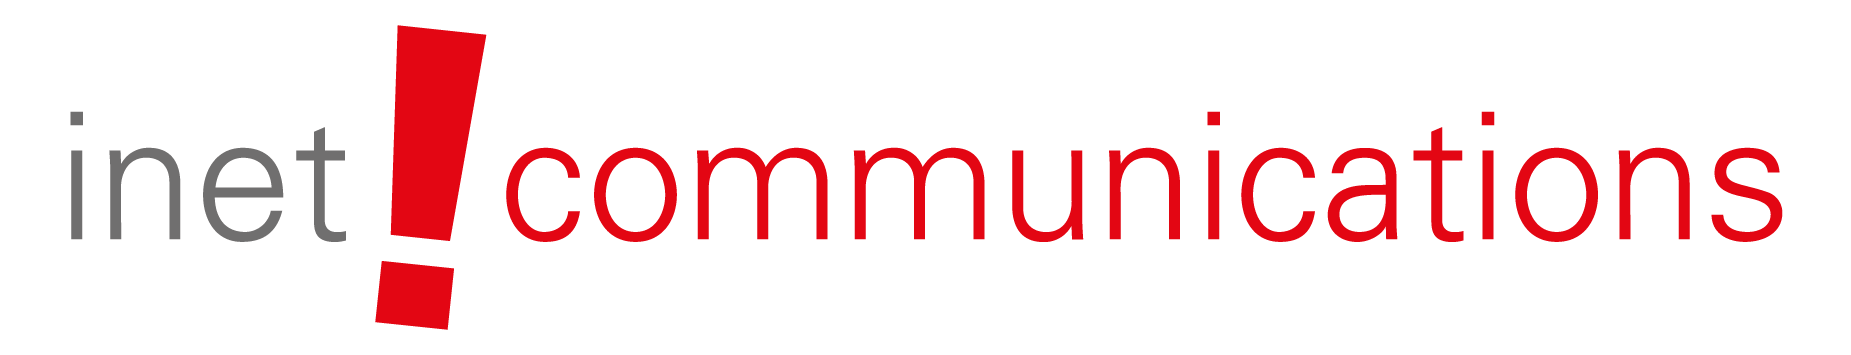 Red comunications